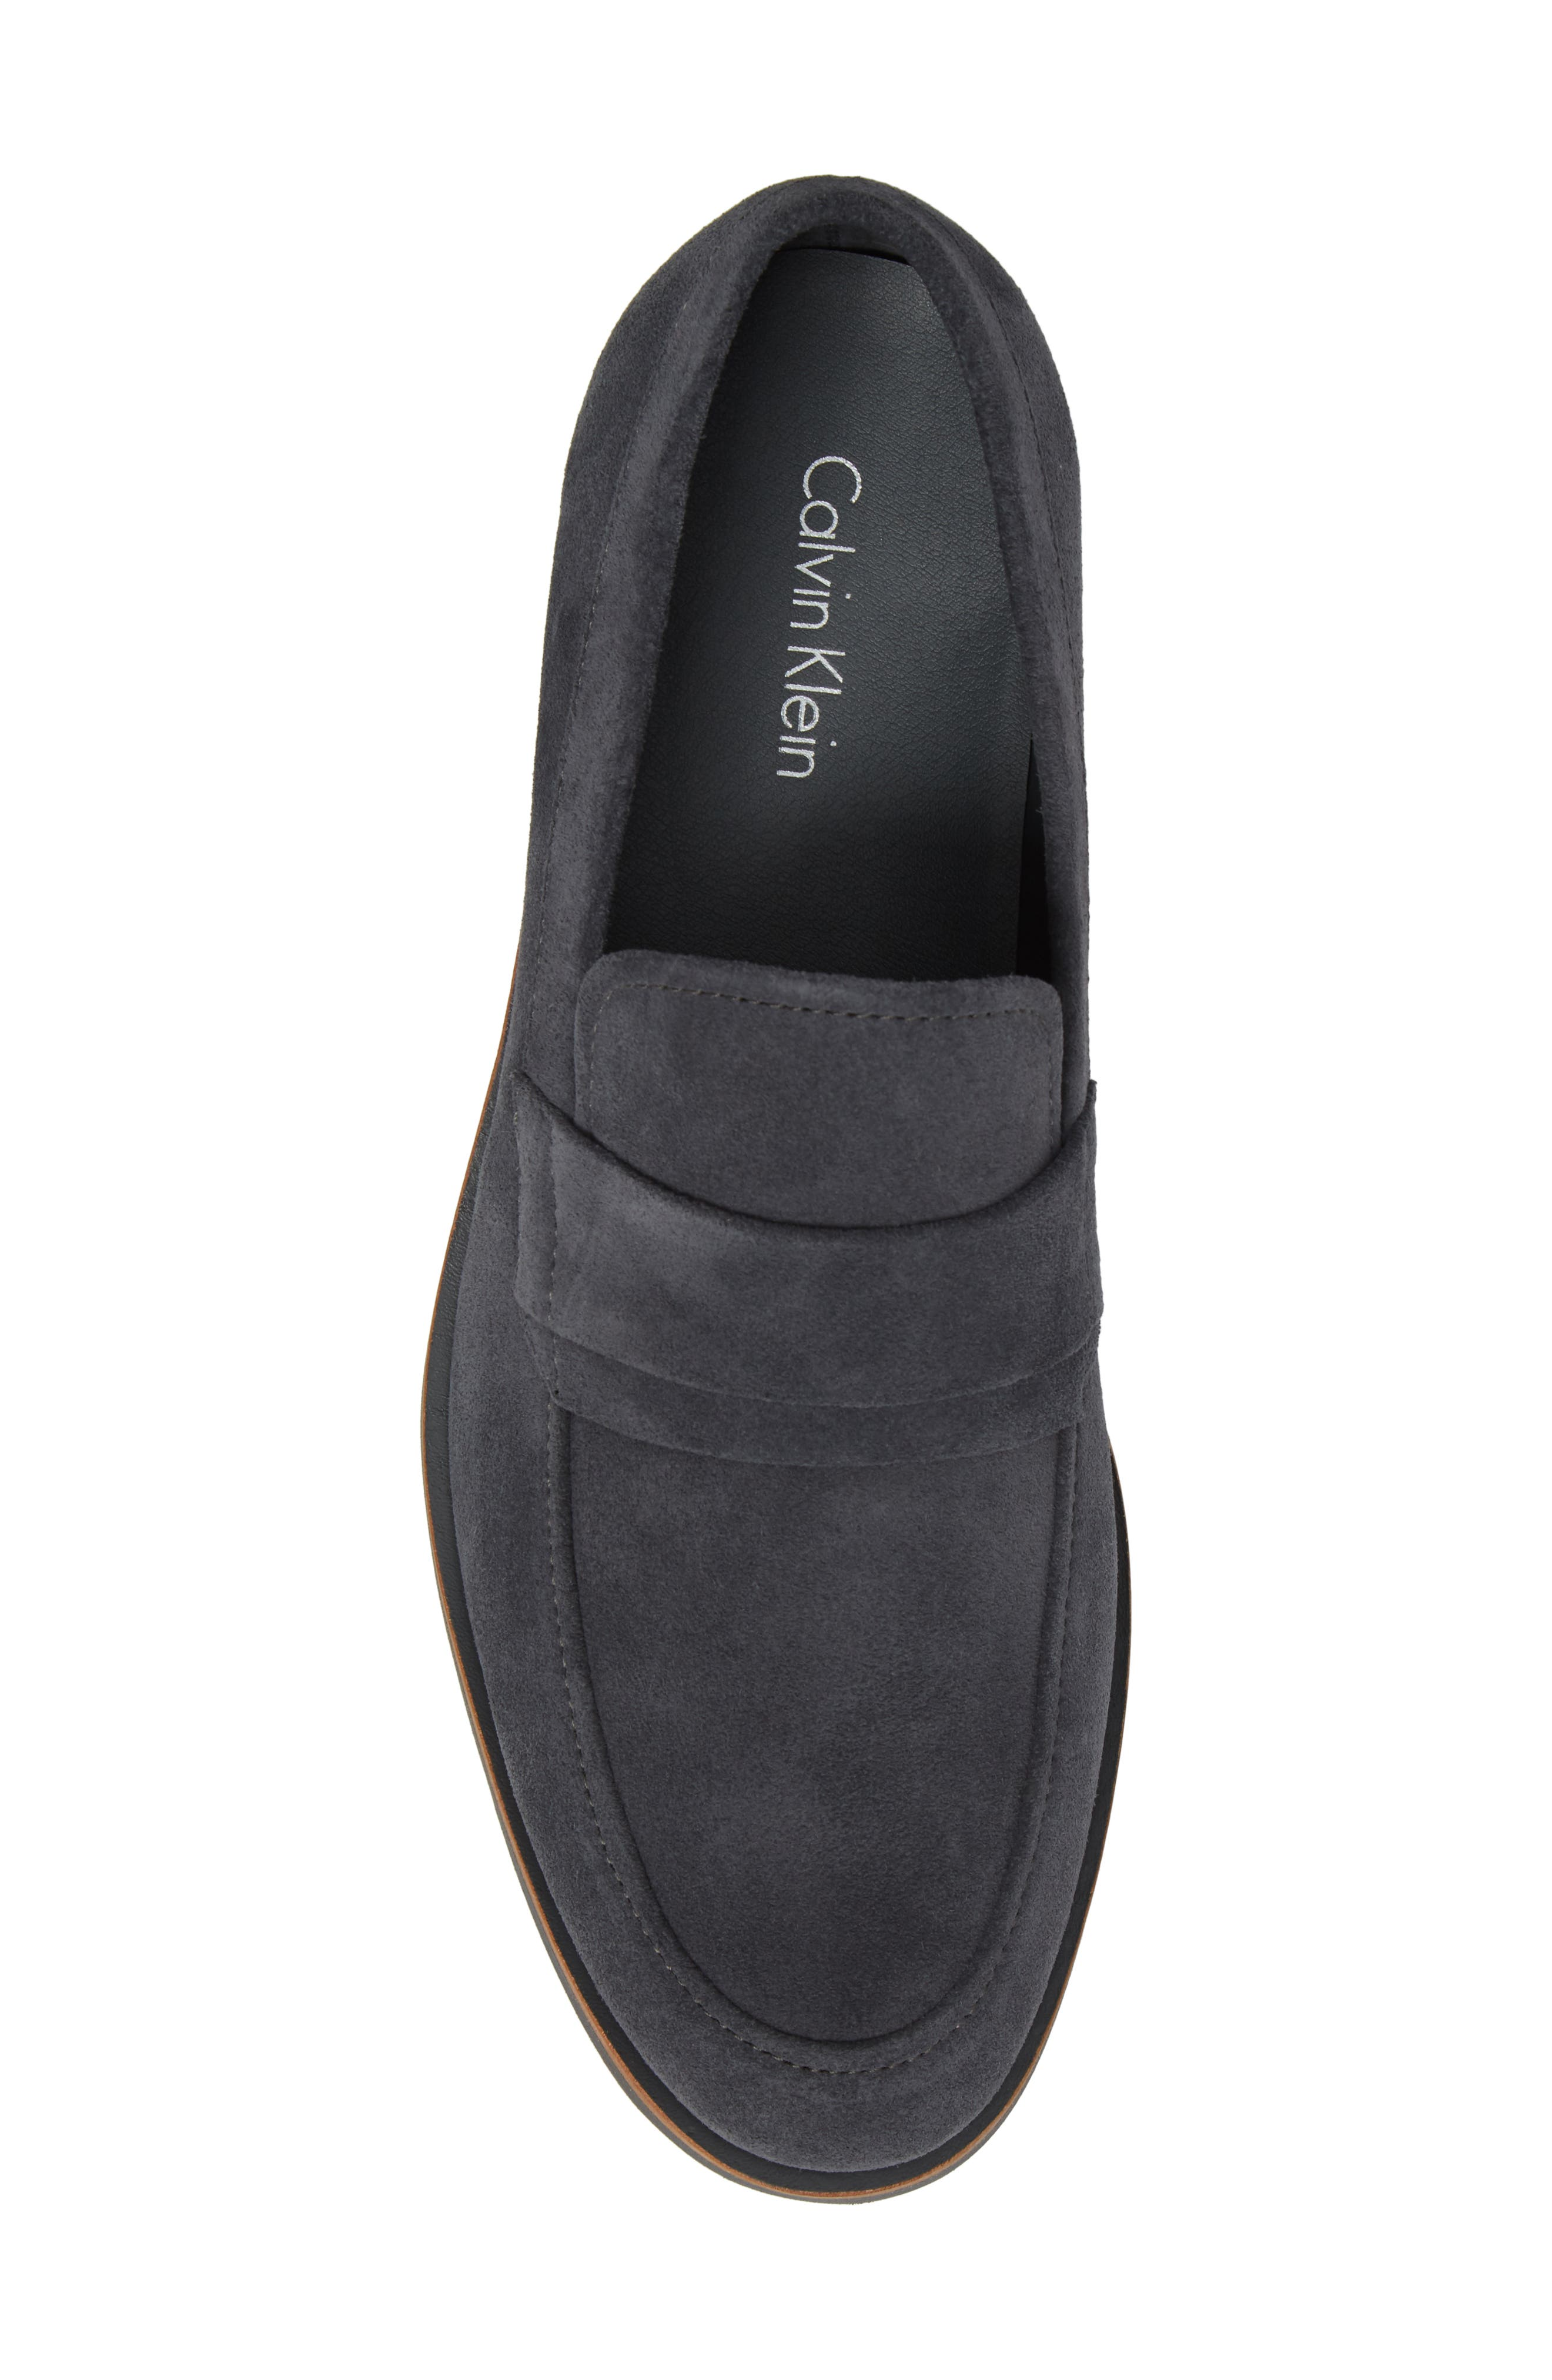 Forbes Loafer,                             Alternate thumbnail 5, color,                             020